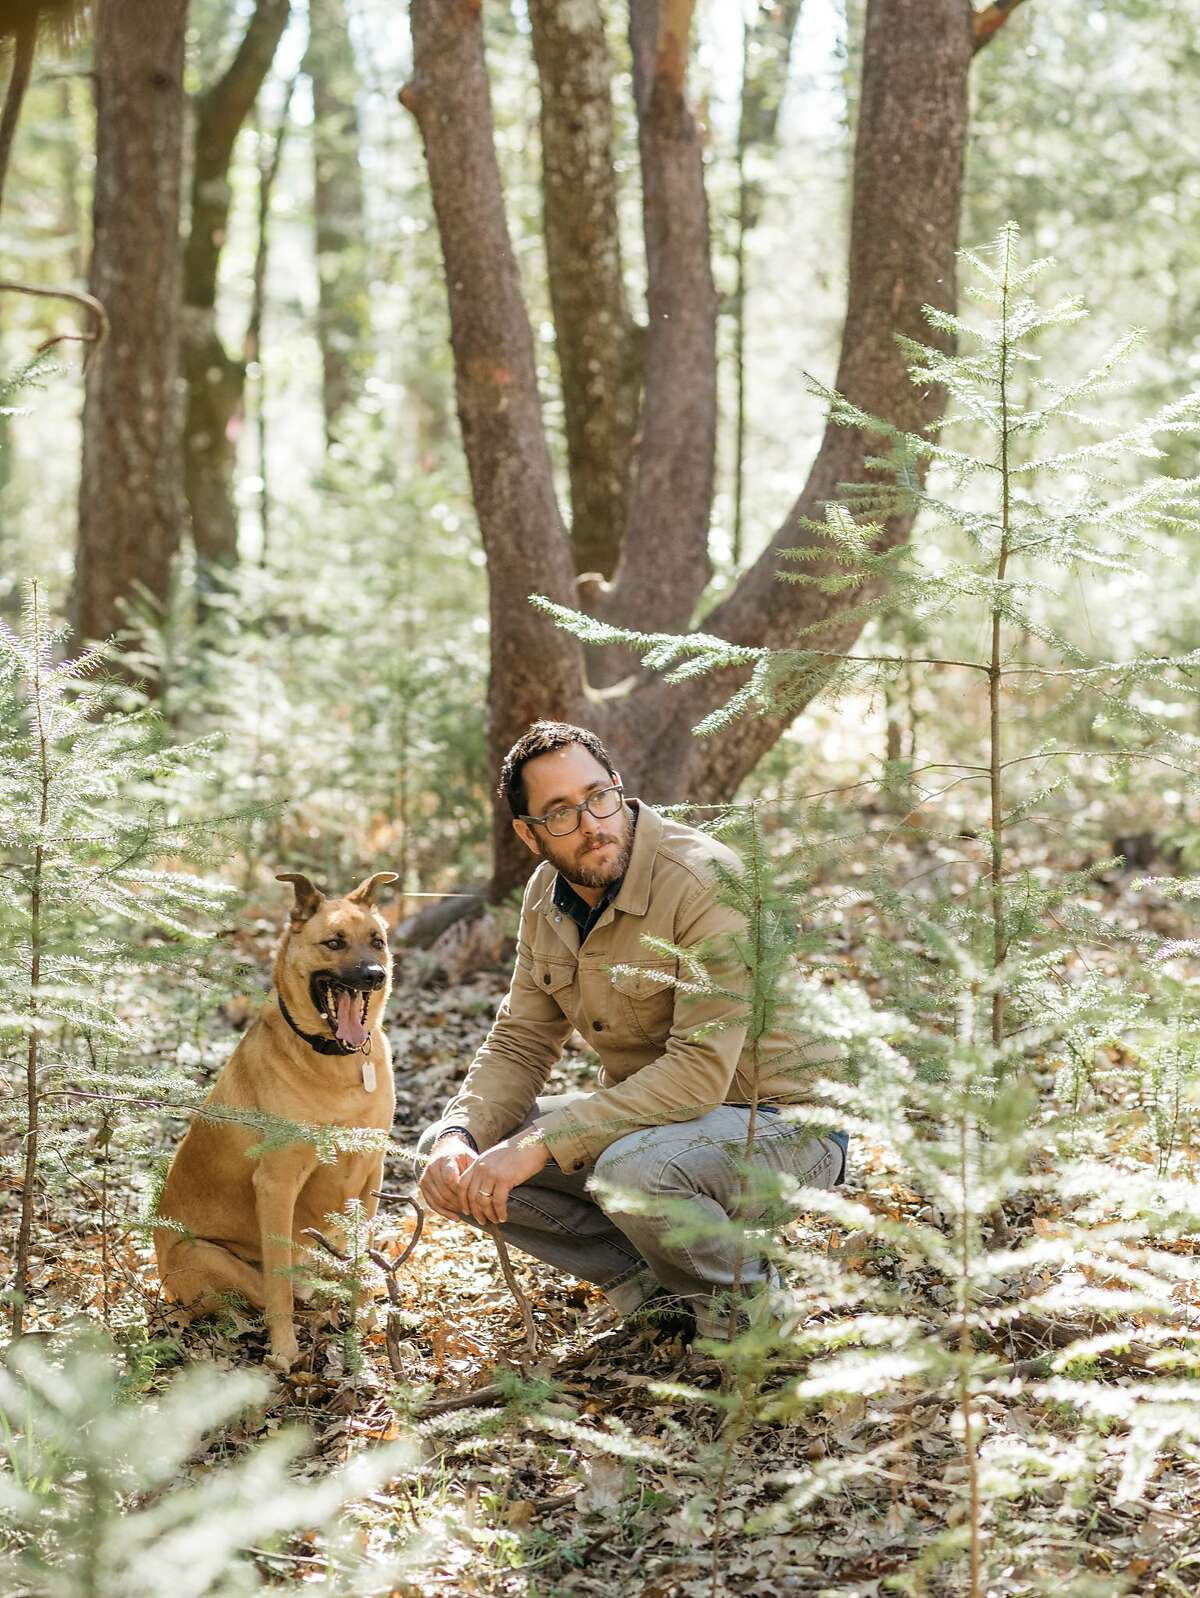 Christopher Kostow forages for mushrooms with his dog Charlie in Los Posadas, Calif., February 8, 2016.